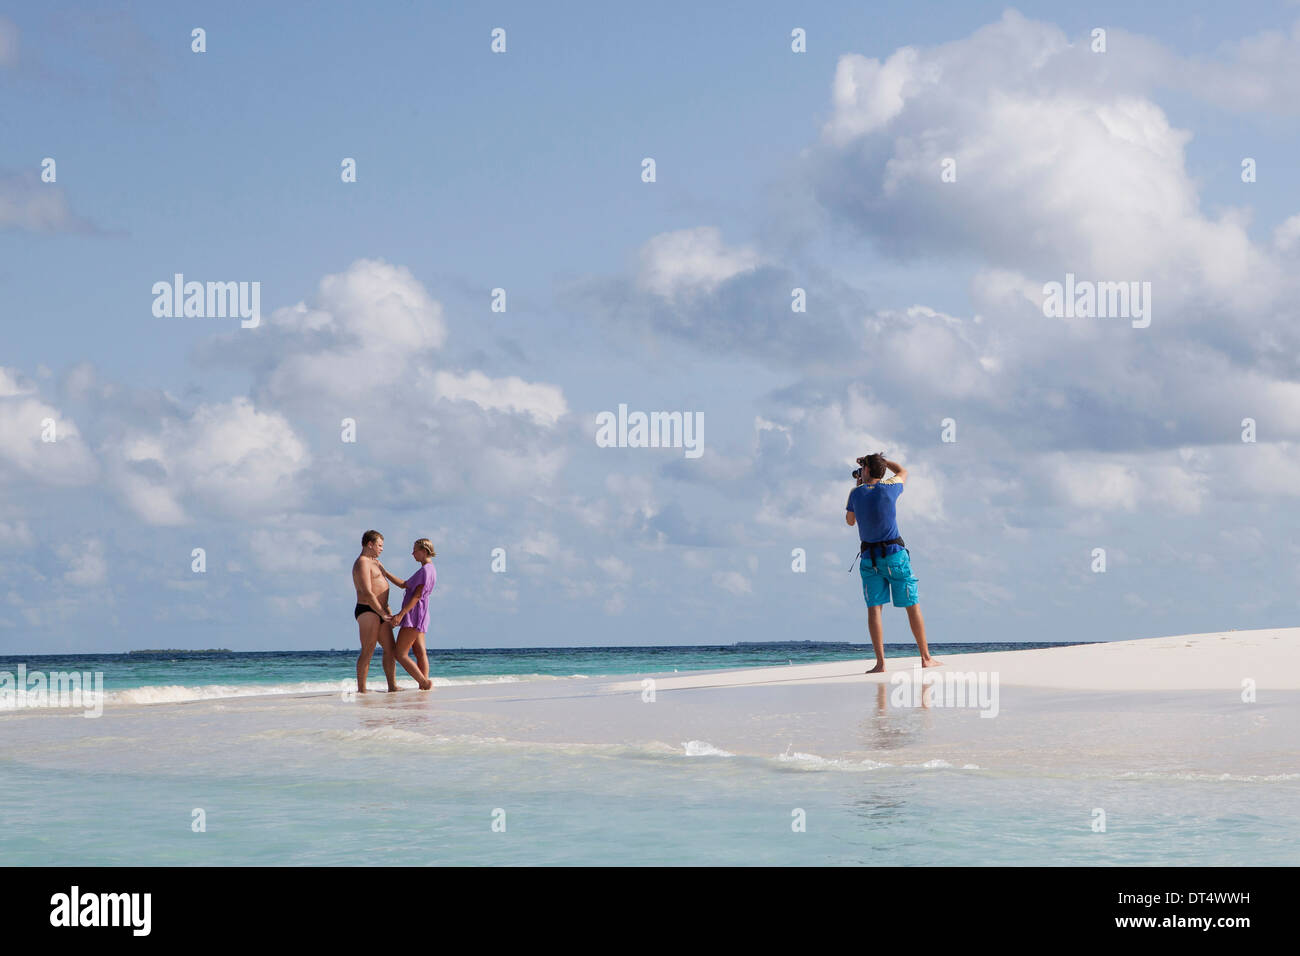 A couple on a beach being photographed in The Maldives - Stock Image